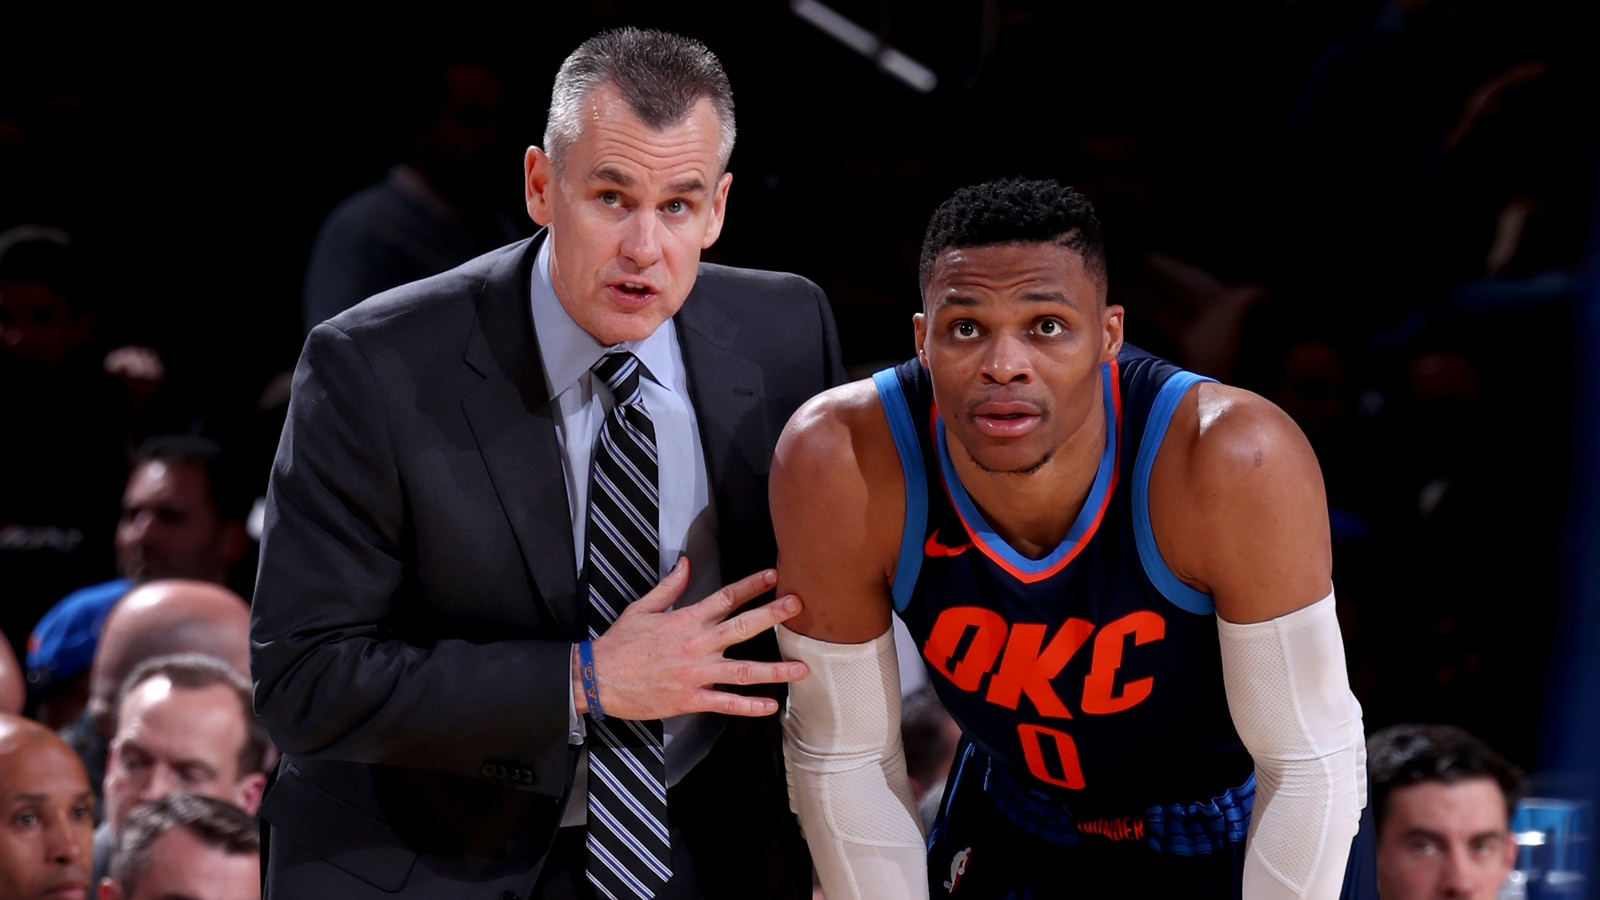 Billy Donovan and Russell Westbrook